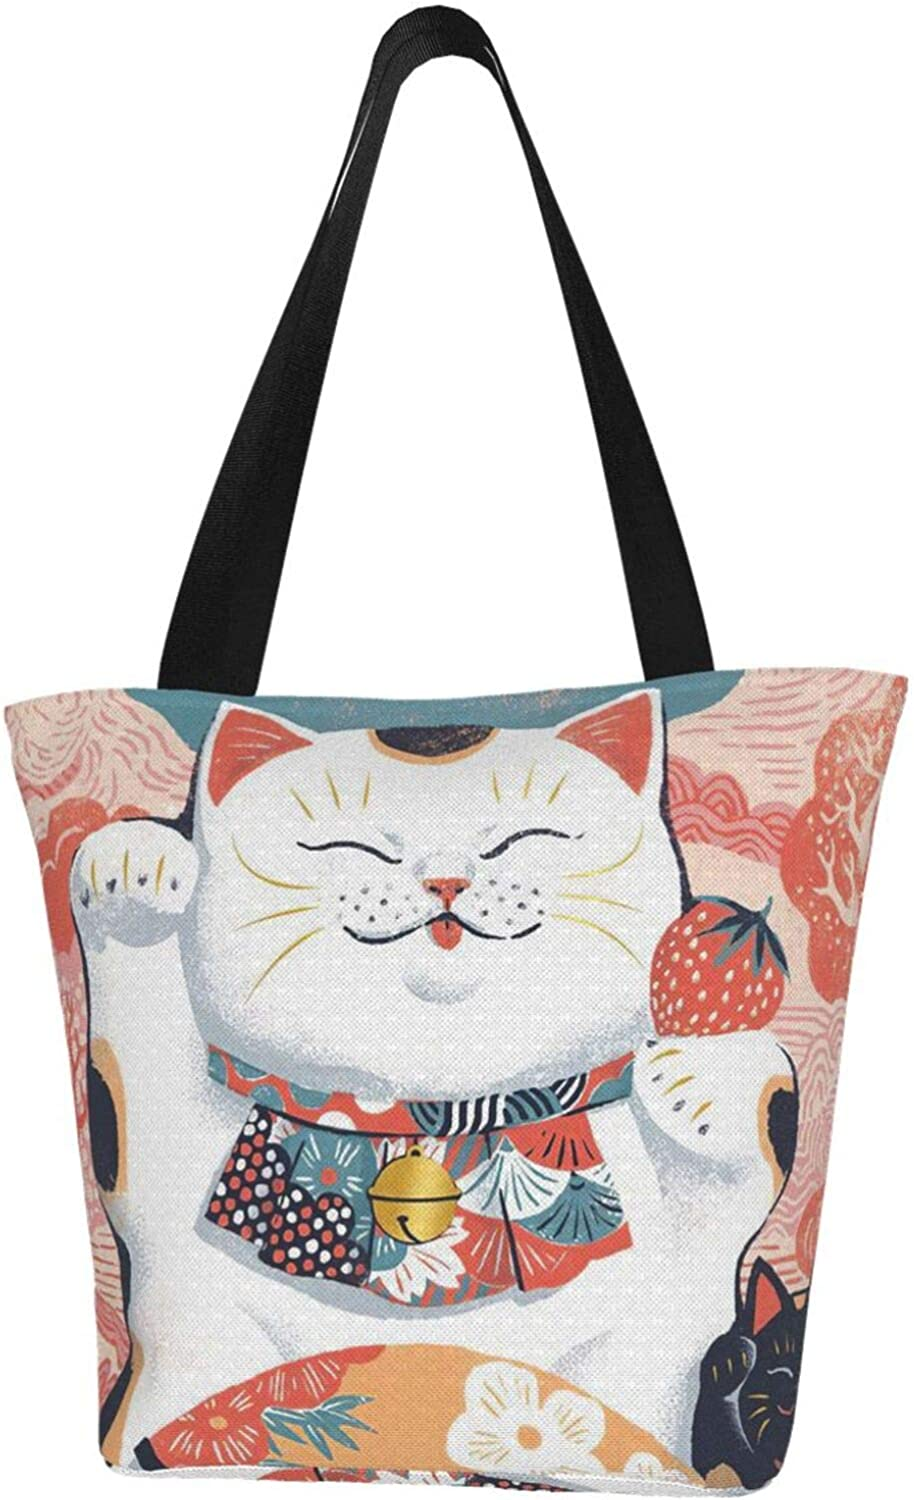 Japanese Style Lucky Cat Money Strawberry Themed Printed Women Canvas Handbag Zipper Shoulder Bag Work Booksbag Tote Purse Leisure Hobo Bag For Shopping